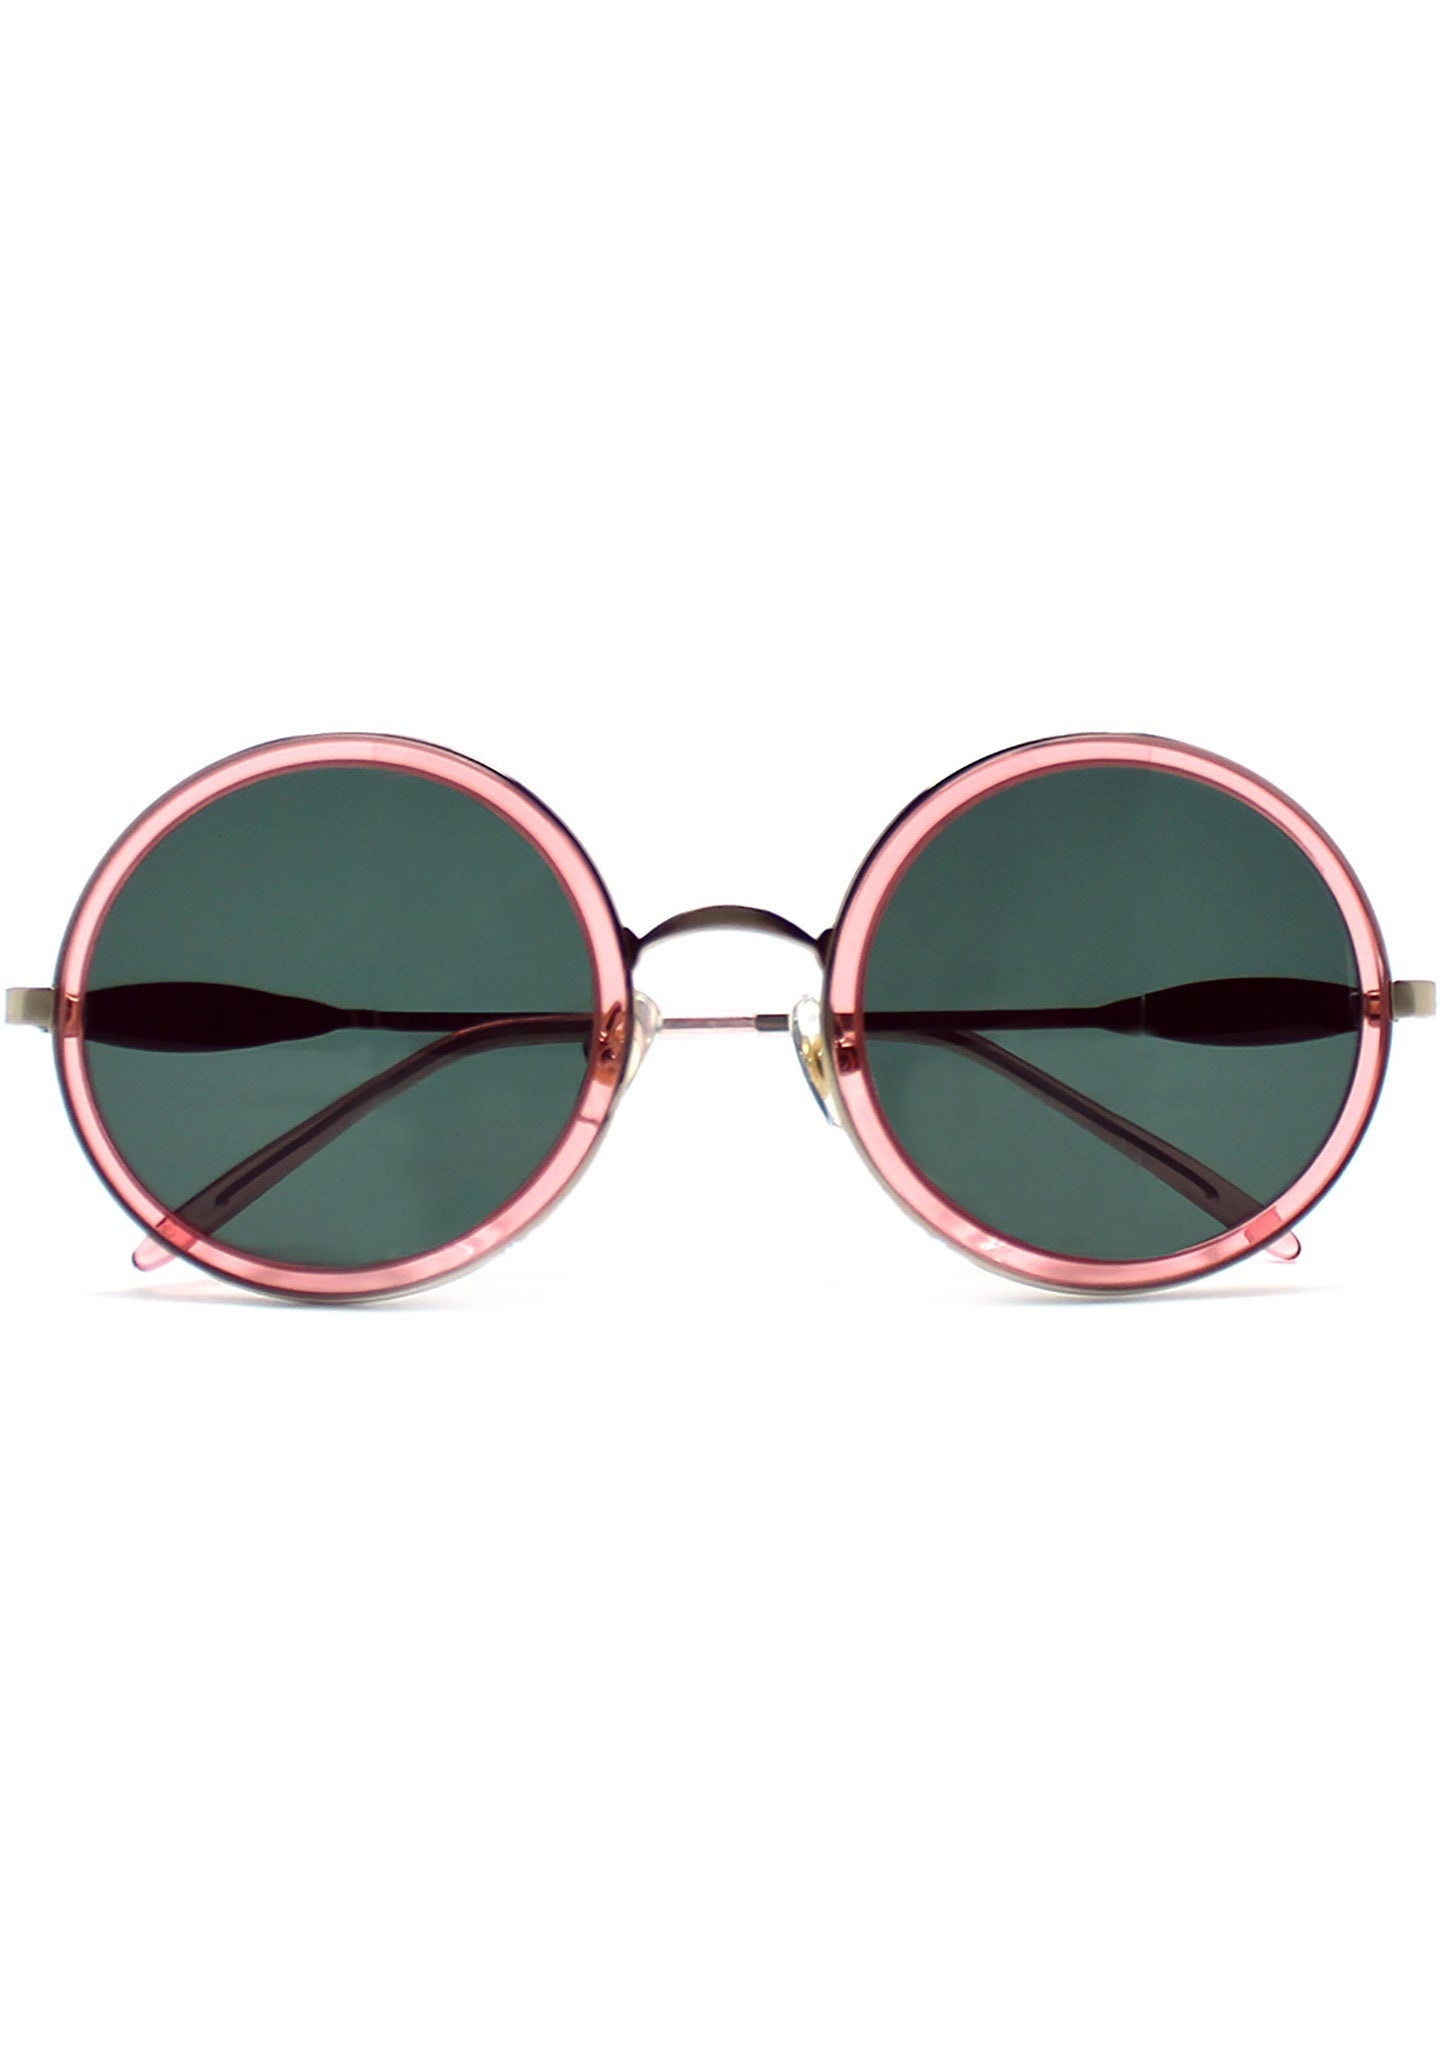 Wildfox Sun Ryder Sunglasses in Rosewater